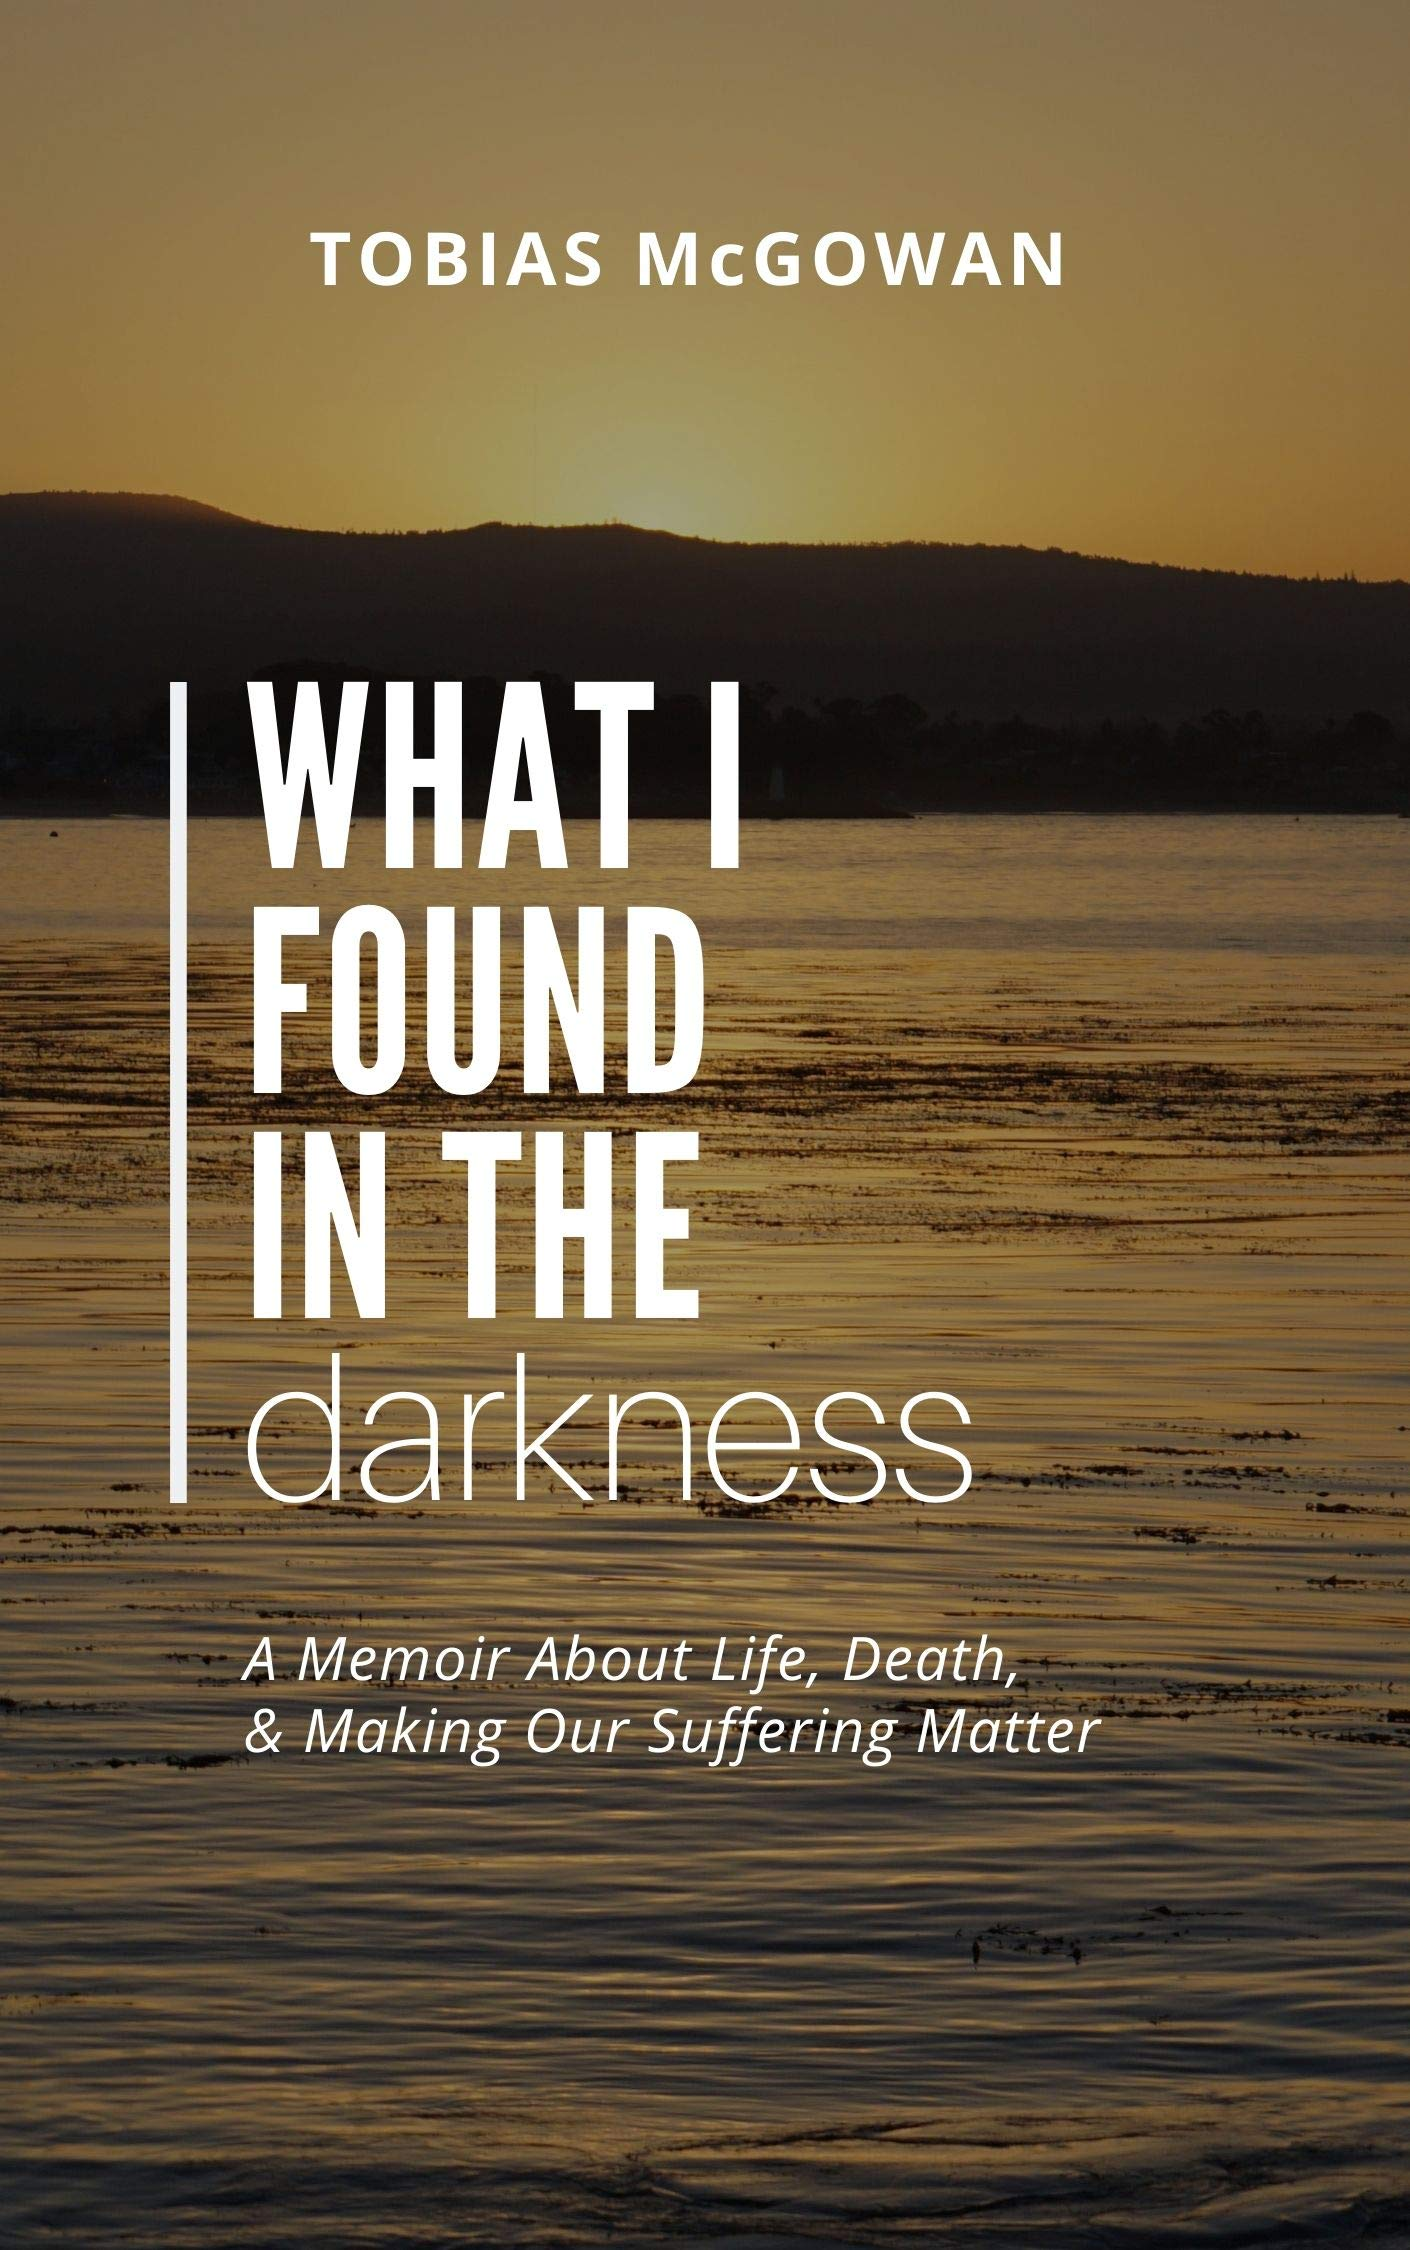 What I Found in the Darkness: A Memoir About Life, Death, & Making Our Suffering Matter